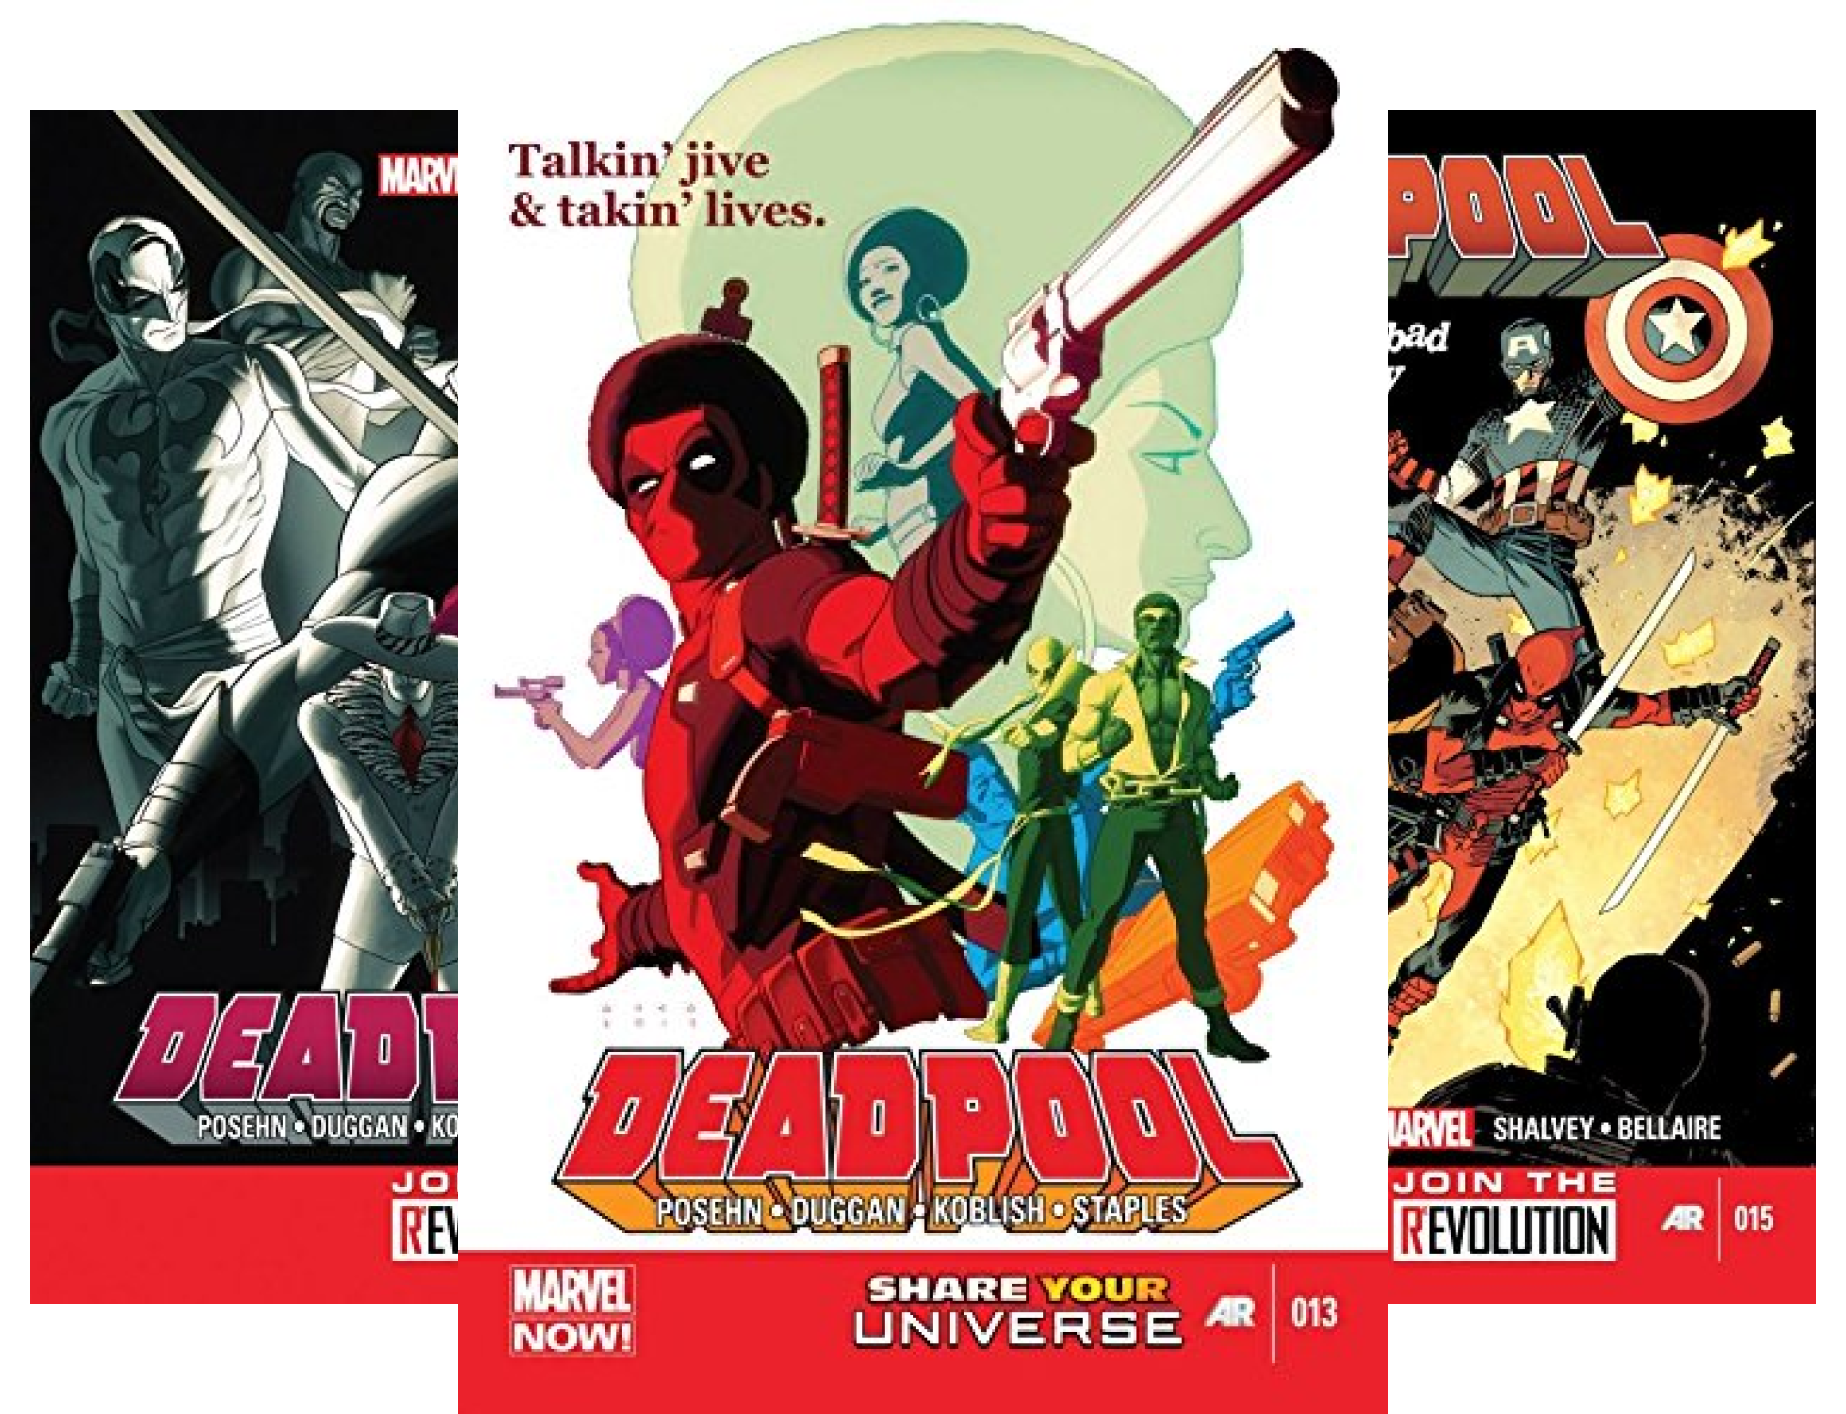 Deadpool: The Good, the Bad and the Ugly #13-18 (6 Book Series)